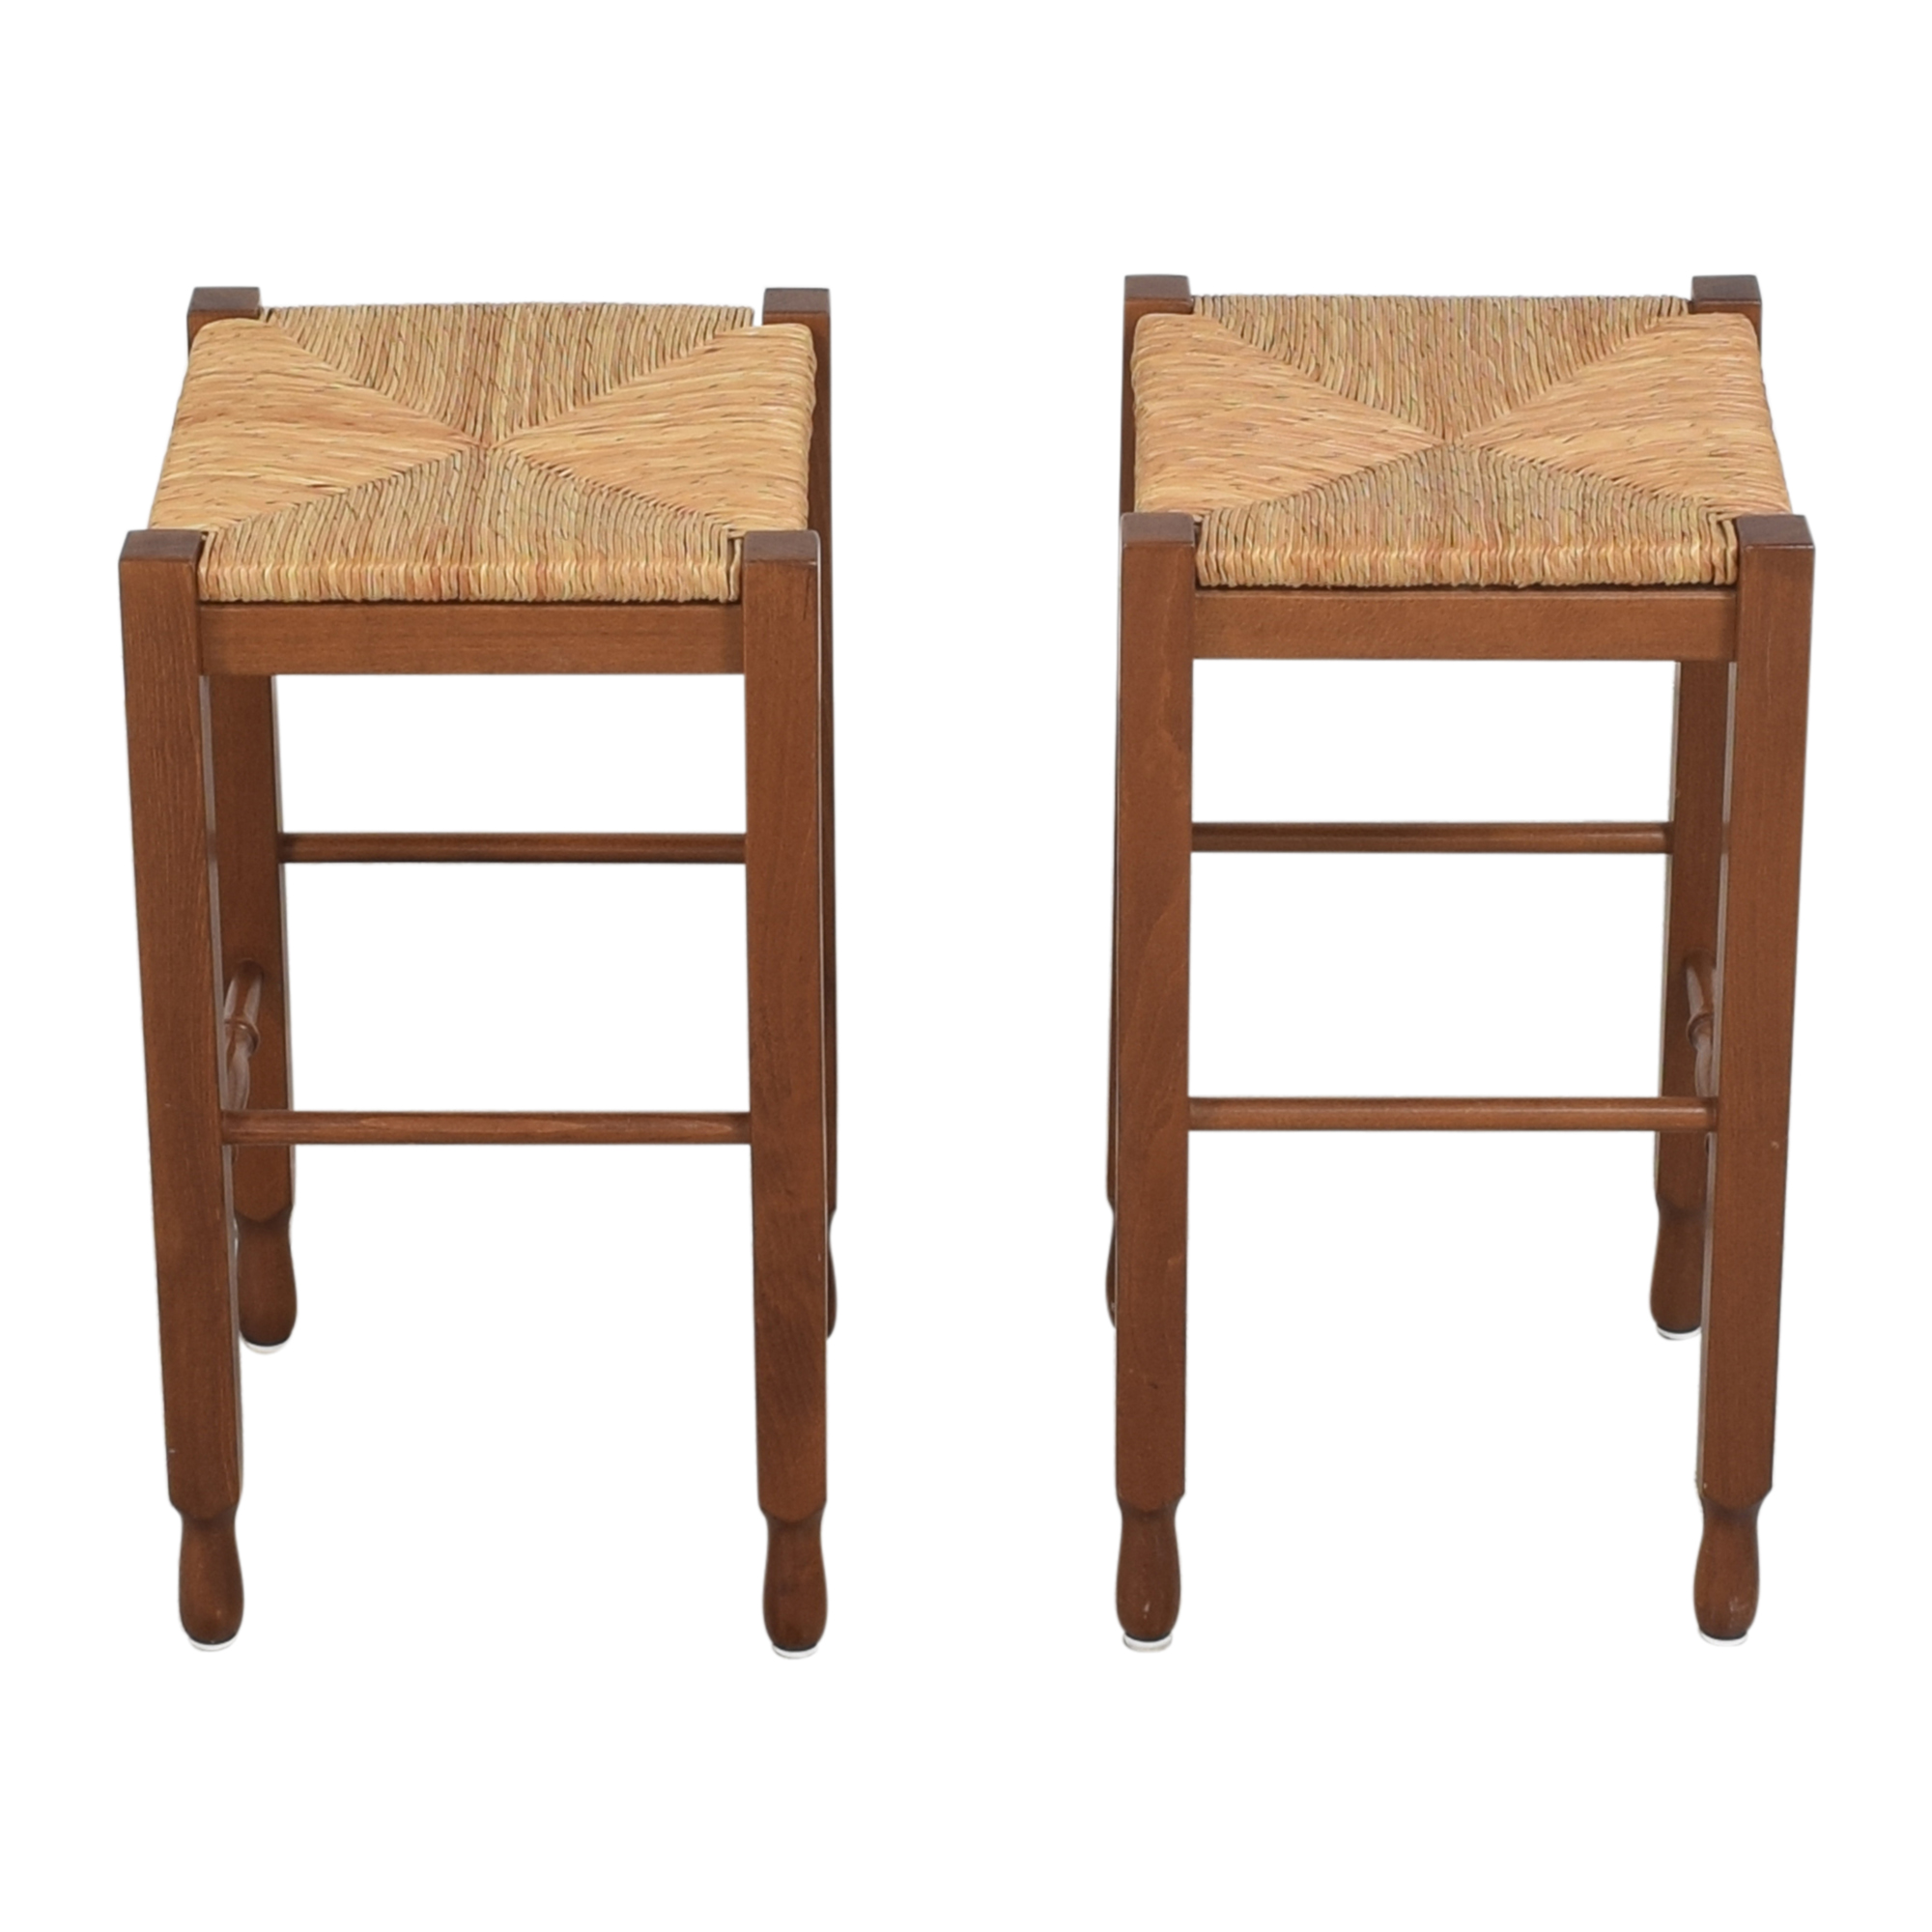 Crate & Barrel Woven Backless Stools / Chairs